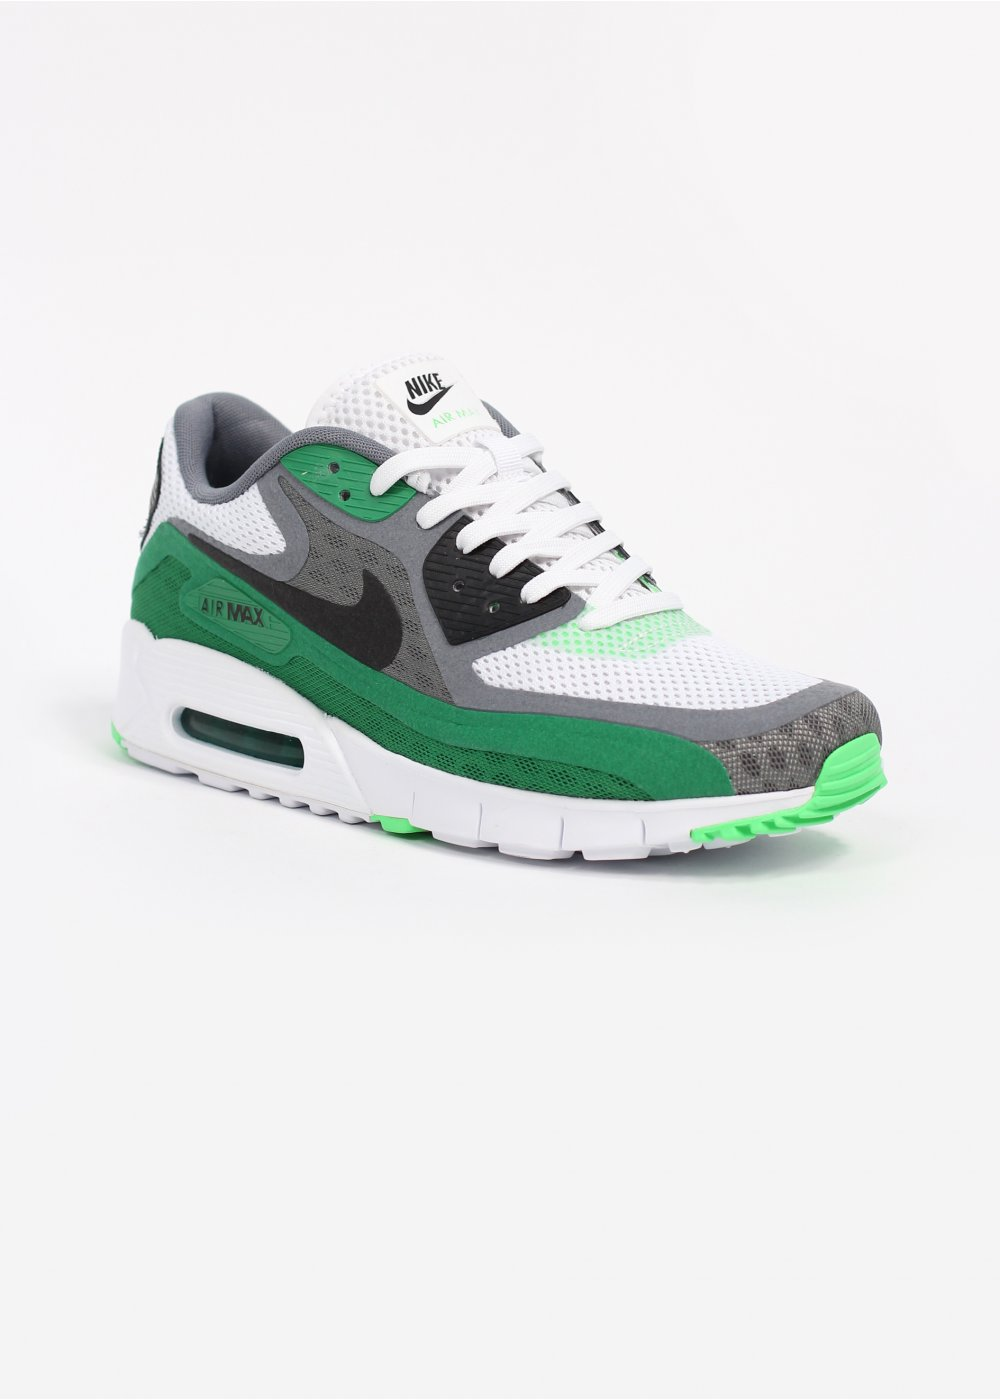 Nike Footwear Air Max 90 Breathe Trainers White Black Cool Grey